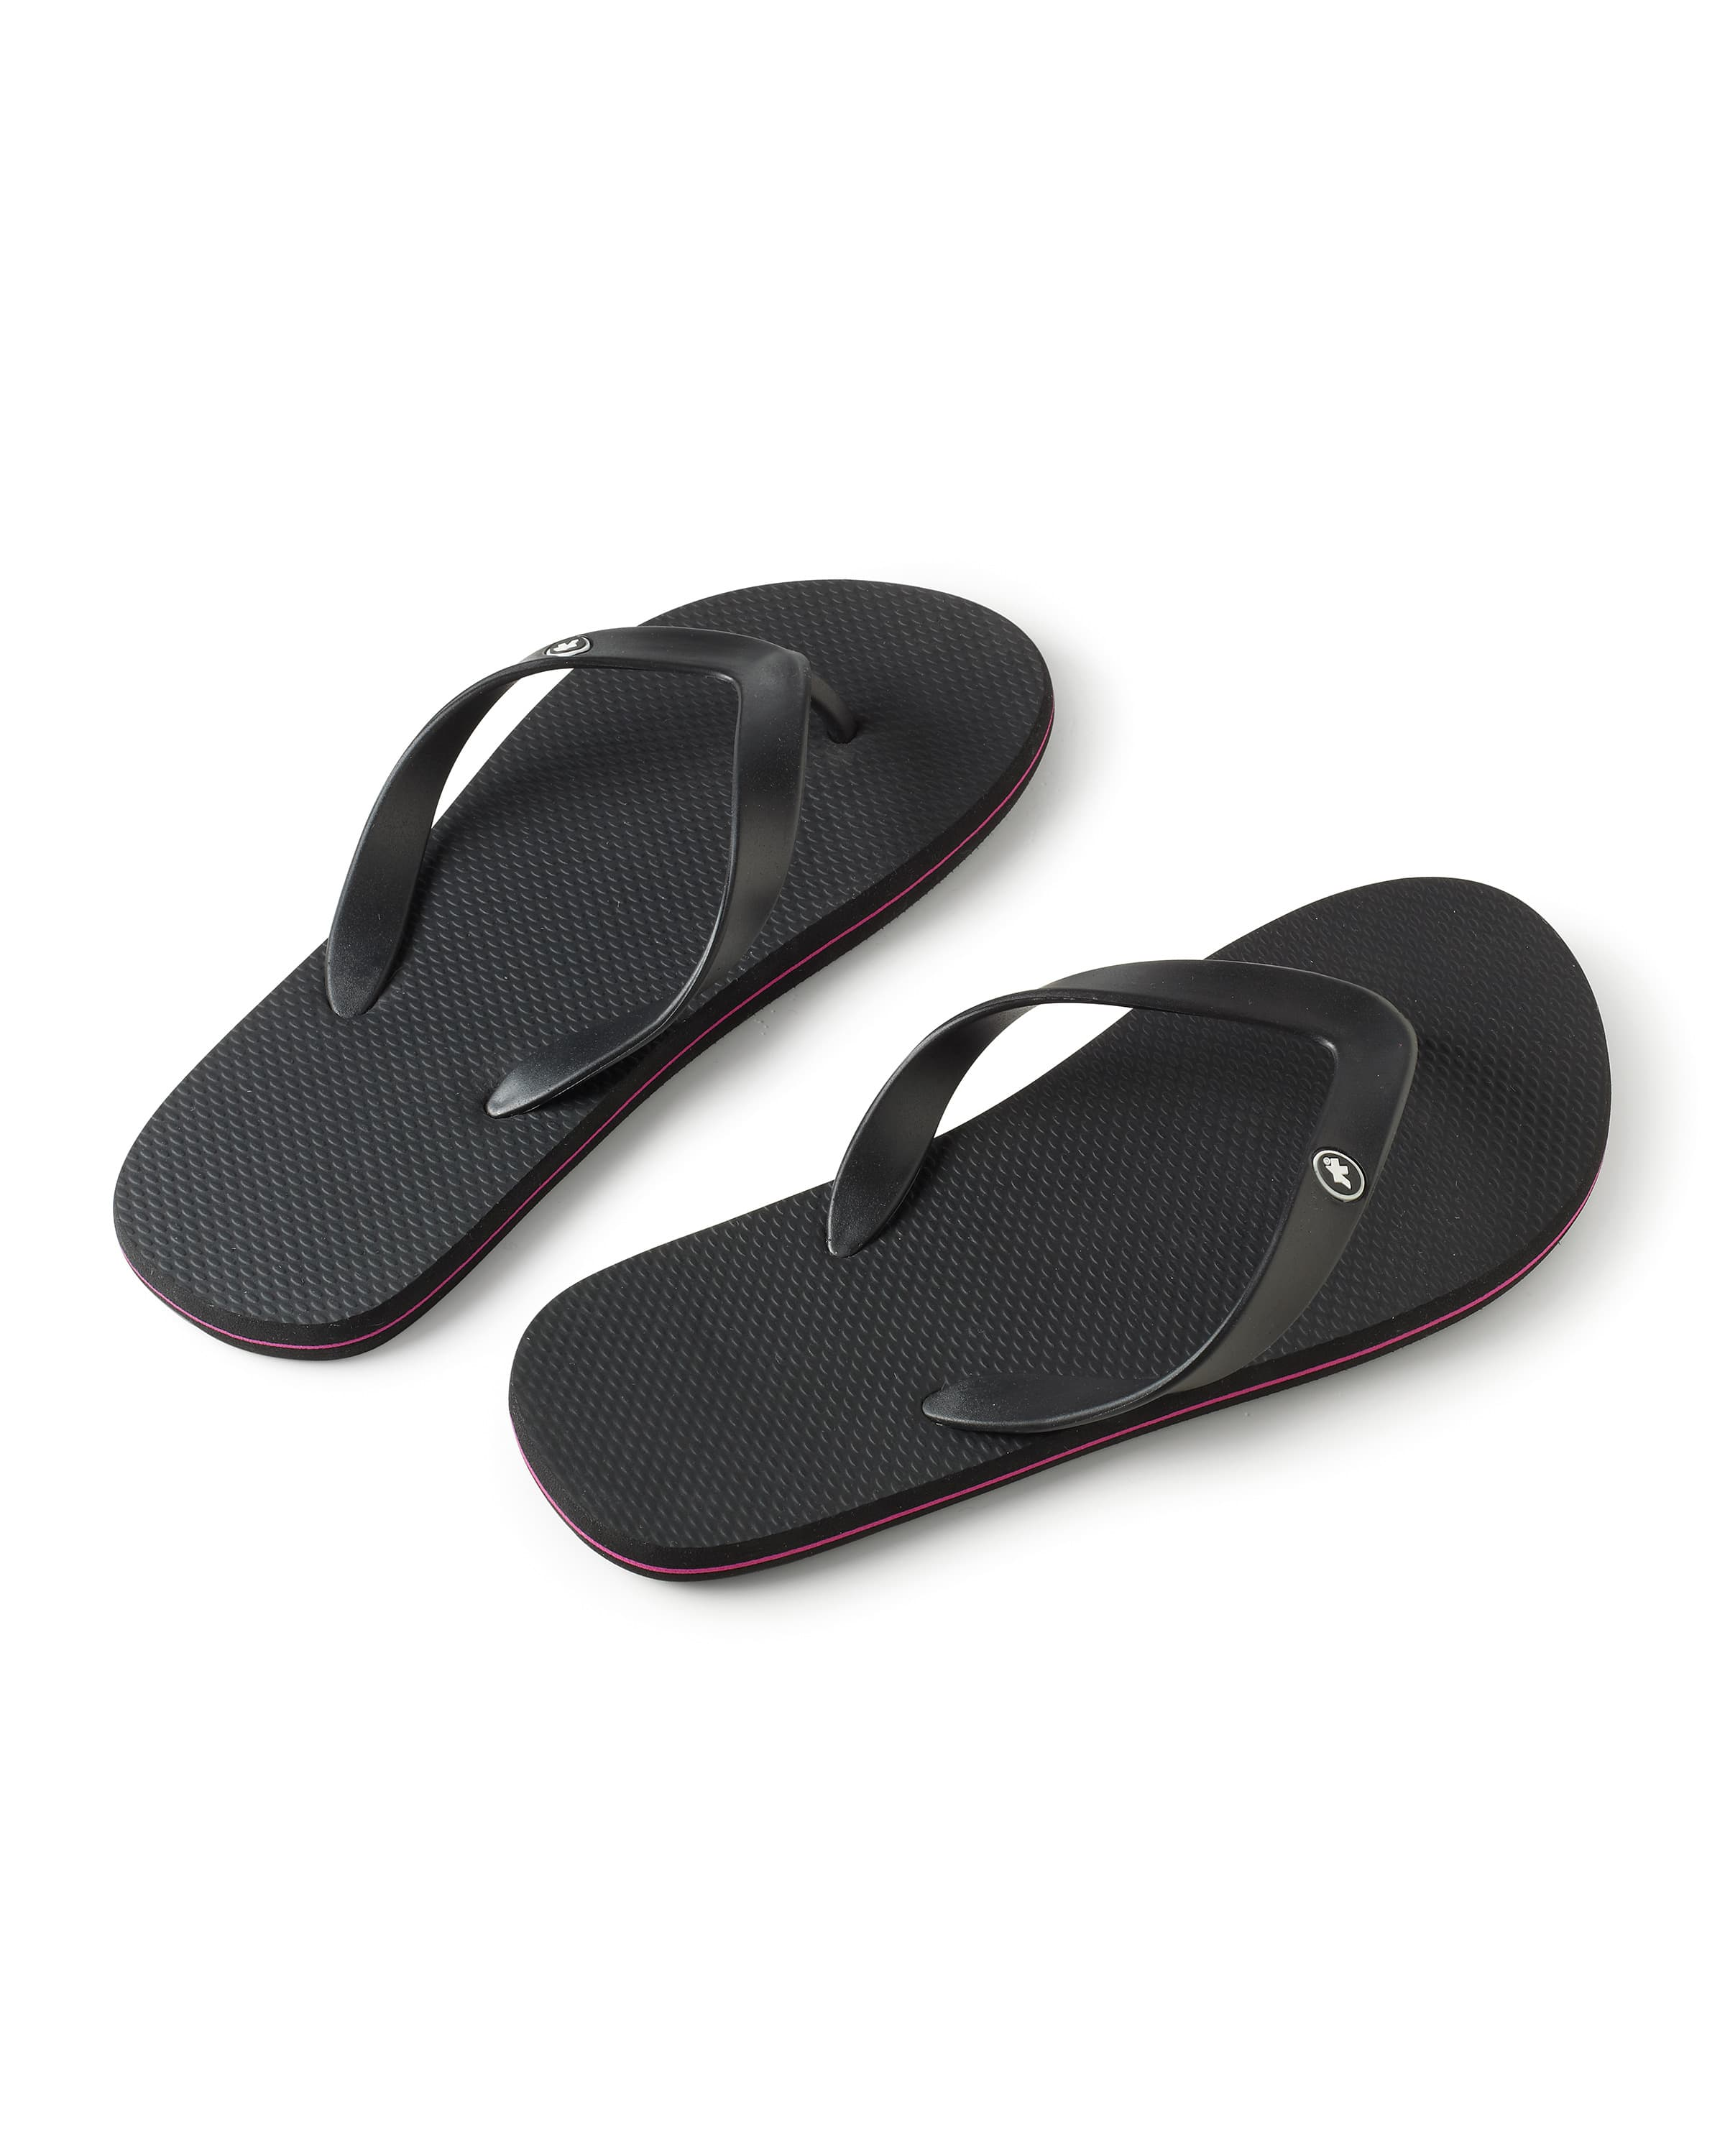 Flip flops & slides – Suitable for men and women alike